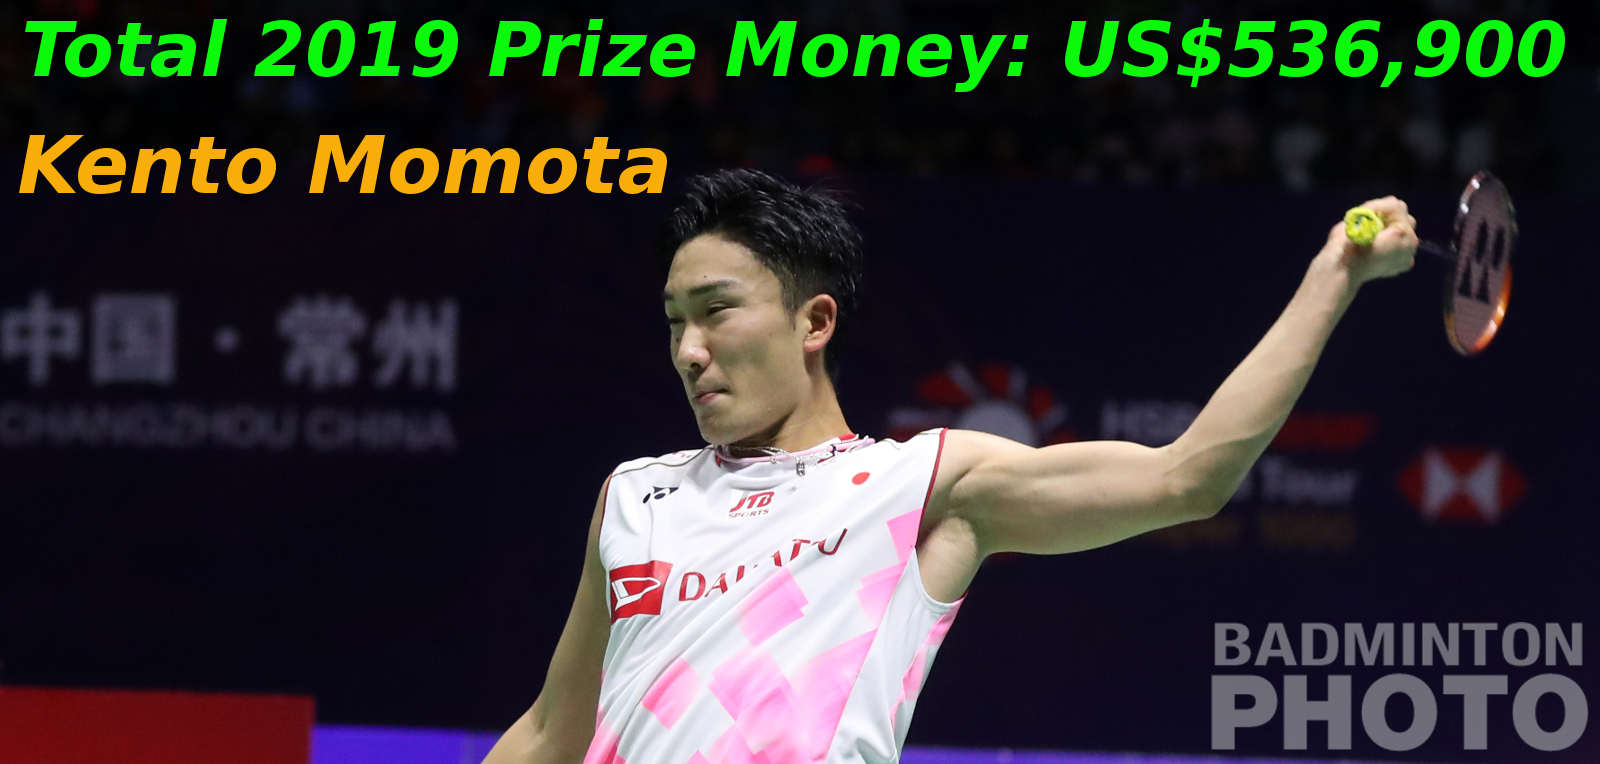 World #1 Kento Momota became the first badminton player in history to earn more than half a million dollars in prize money when he tacked on $120,000 from the World […]